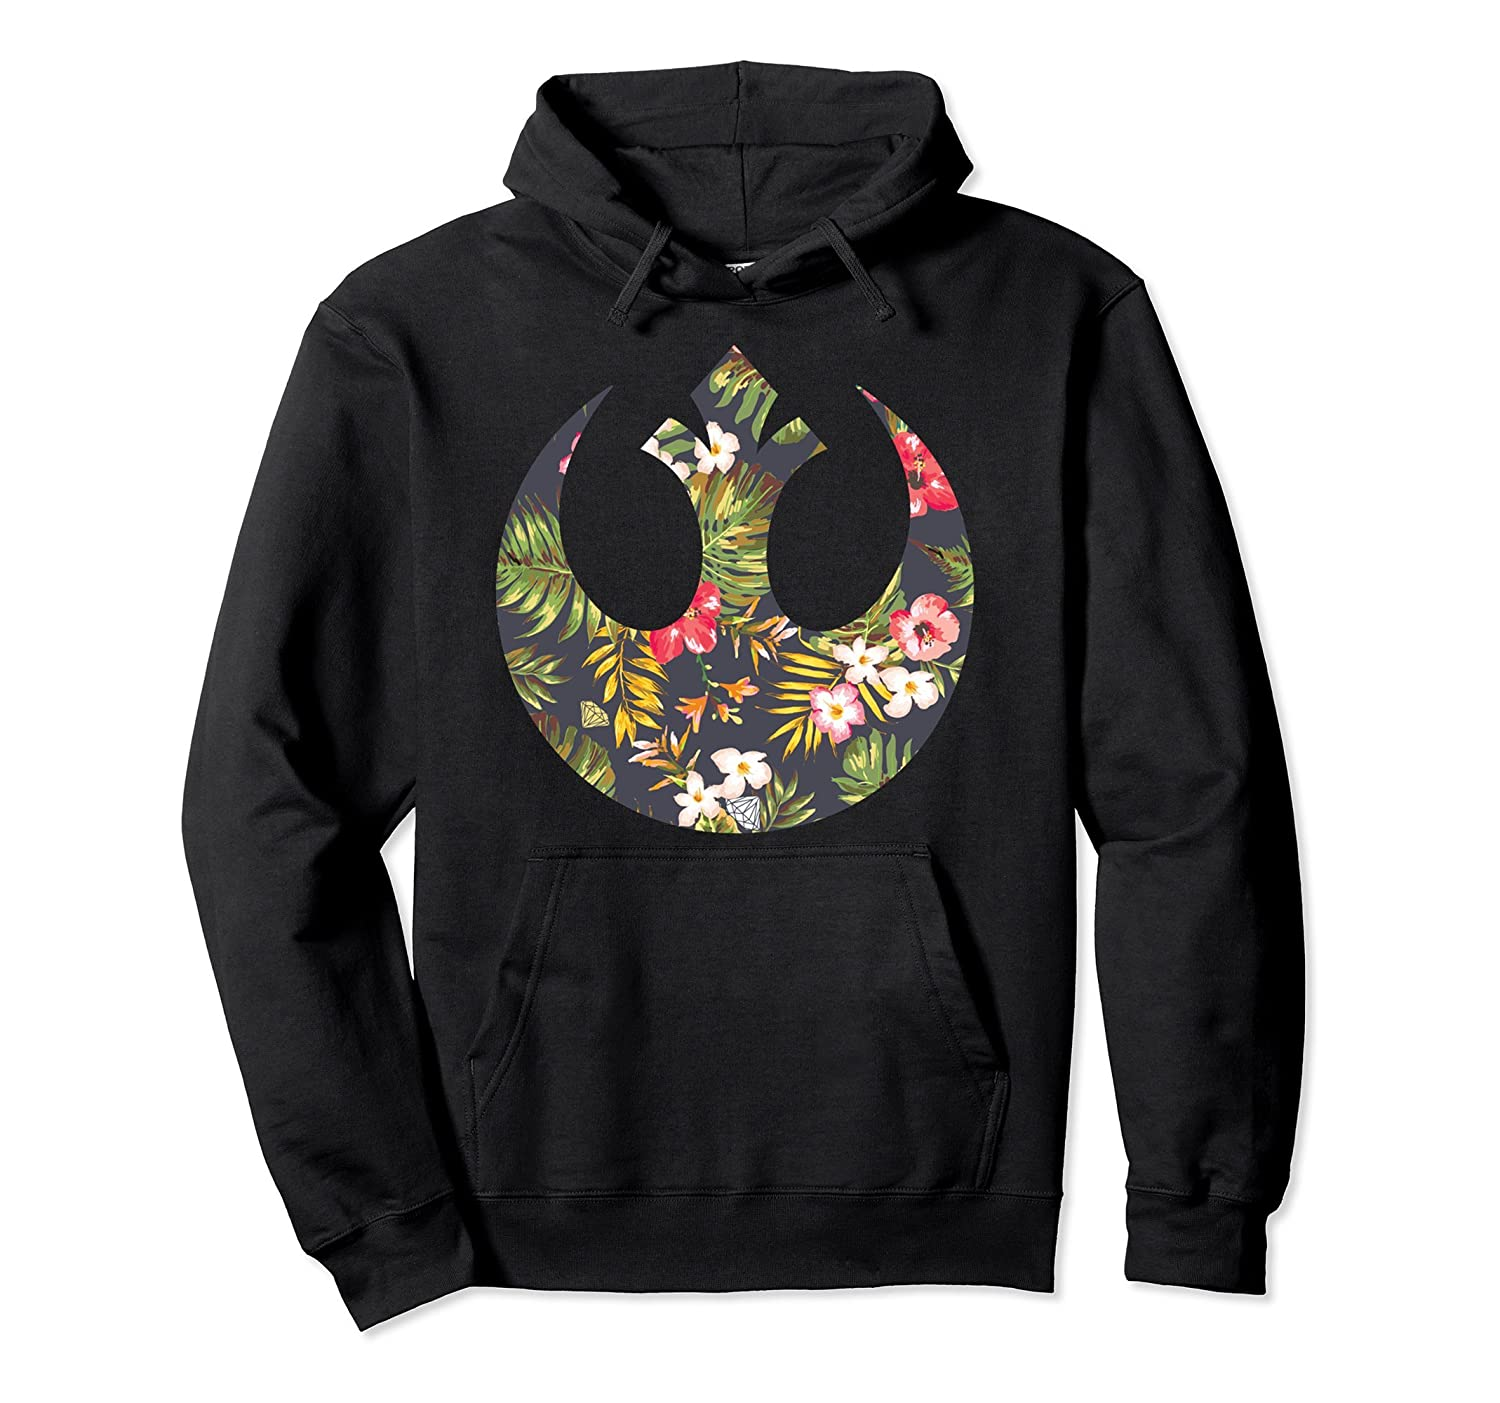 bee34cf9e5c Amazon.com  Star Wars Rebel Alliance Floral Print Graphic Hoodie  Clothing